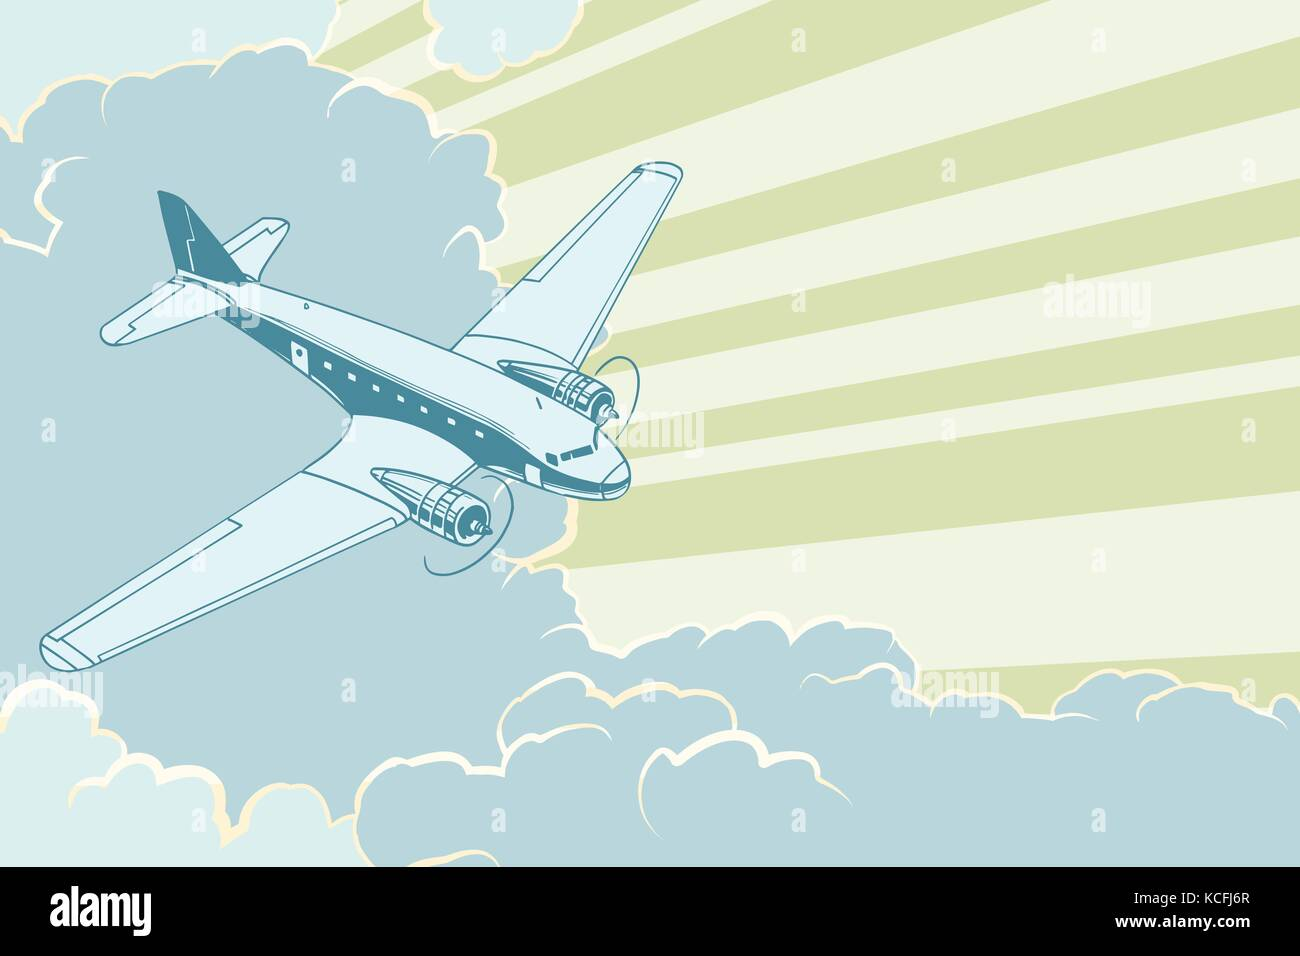 Retro airplane flying in the clouds. Air travel background - Stock Vector